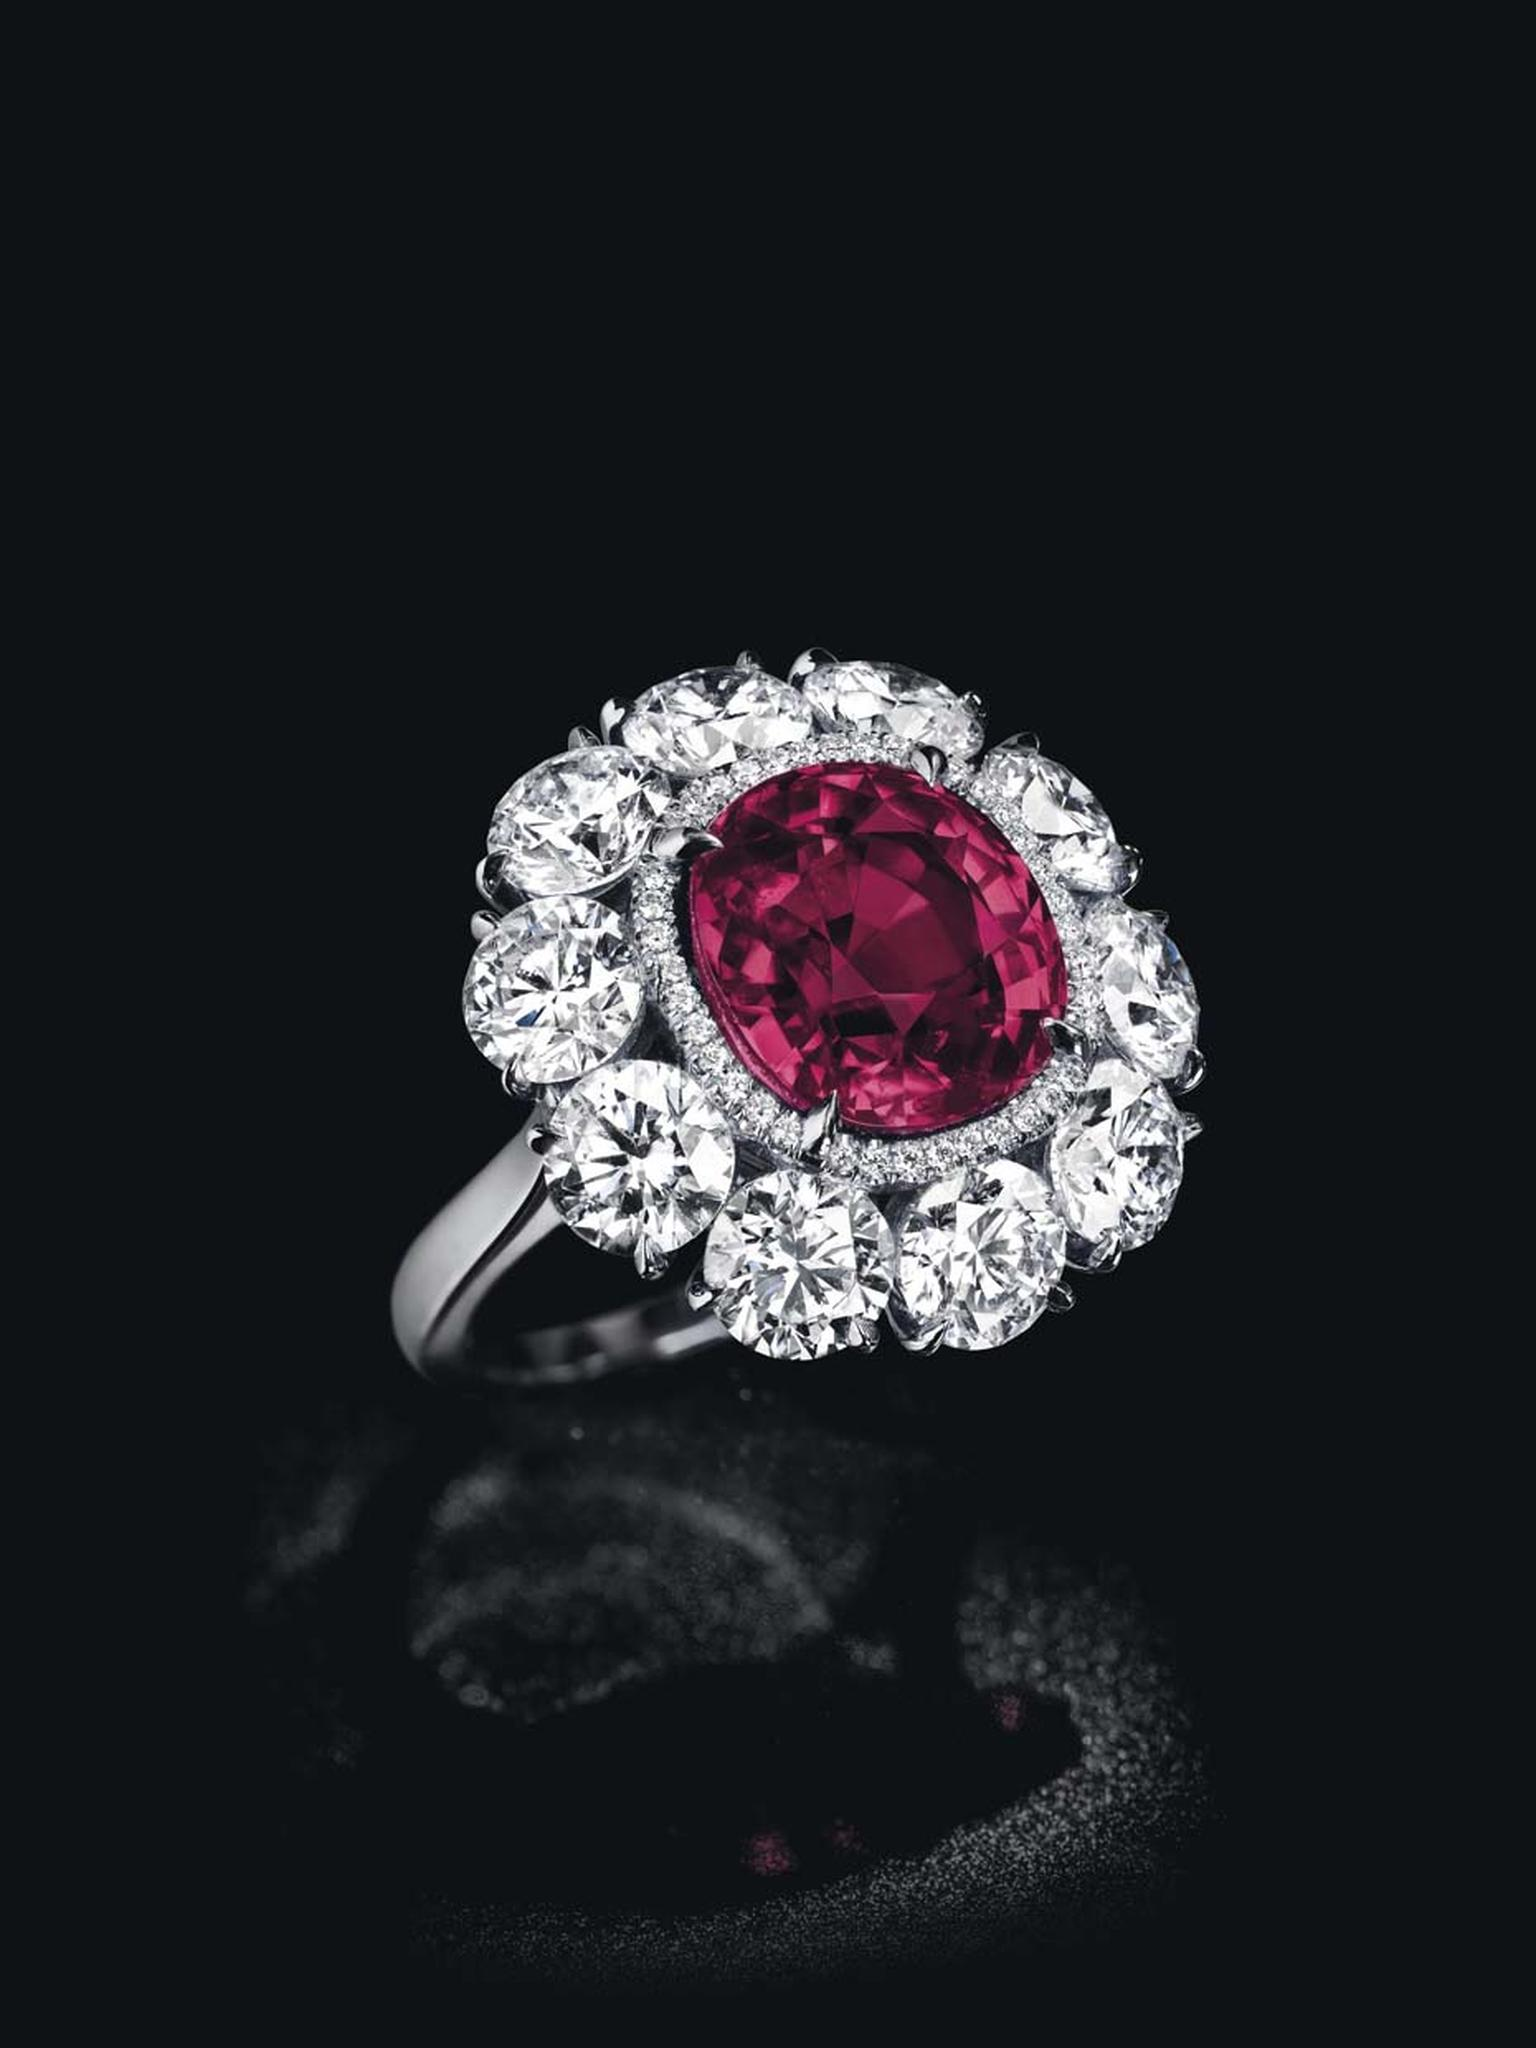 The hammer fell at $3.14 million for this cushion-shaped Burmese ruby and diamond ring, known as the Pride of Burma, at Christie's Magnificent Jewels Sale in Geneva.